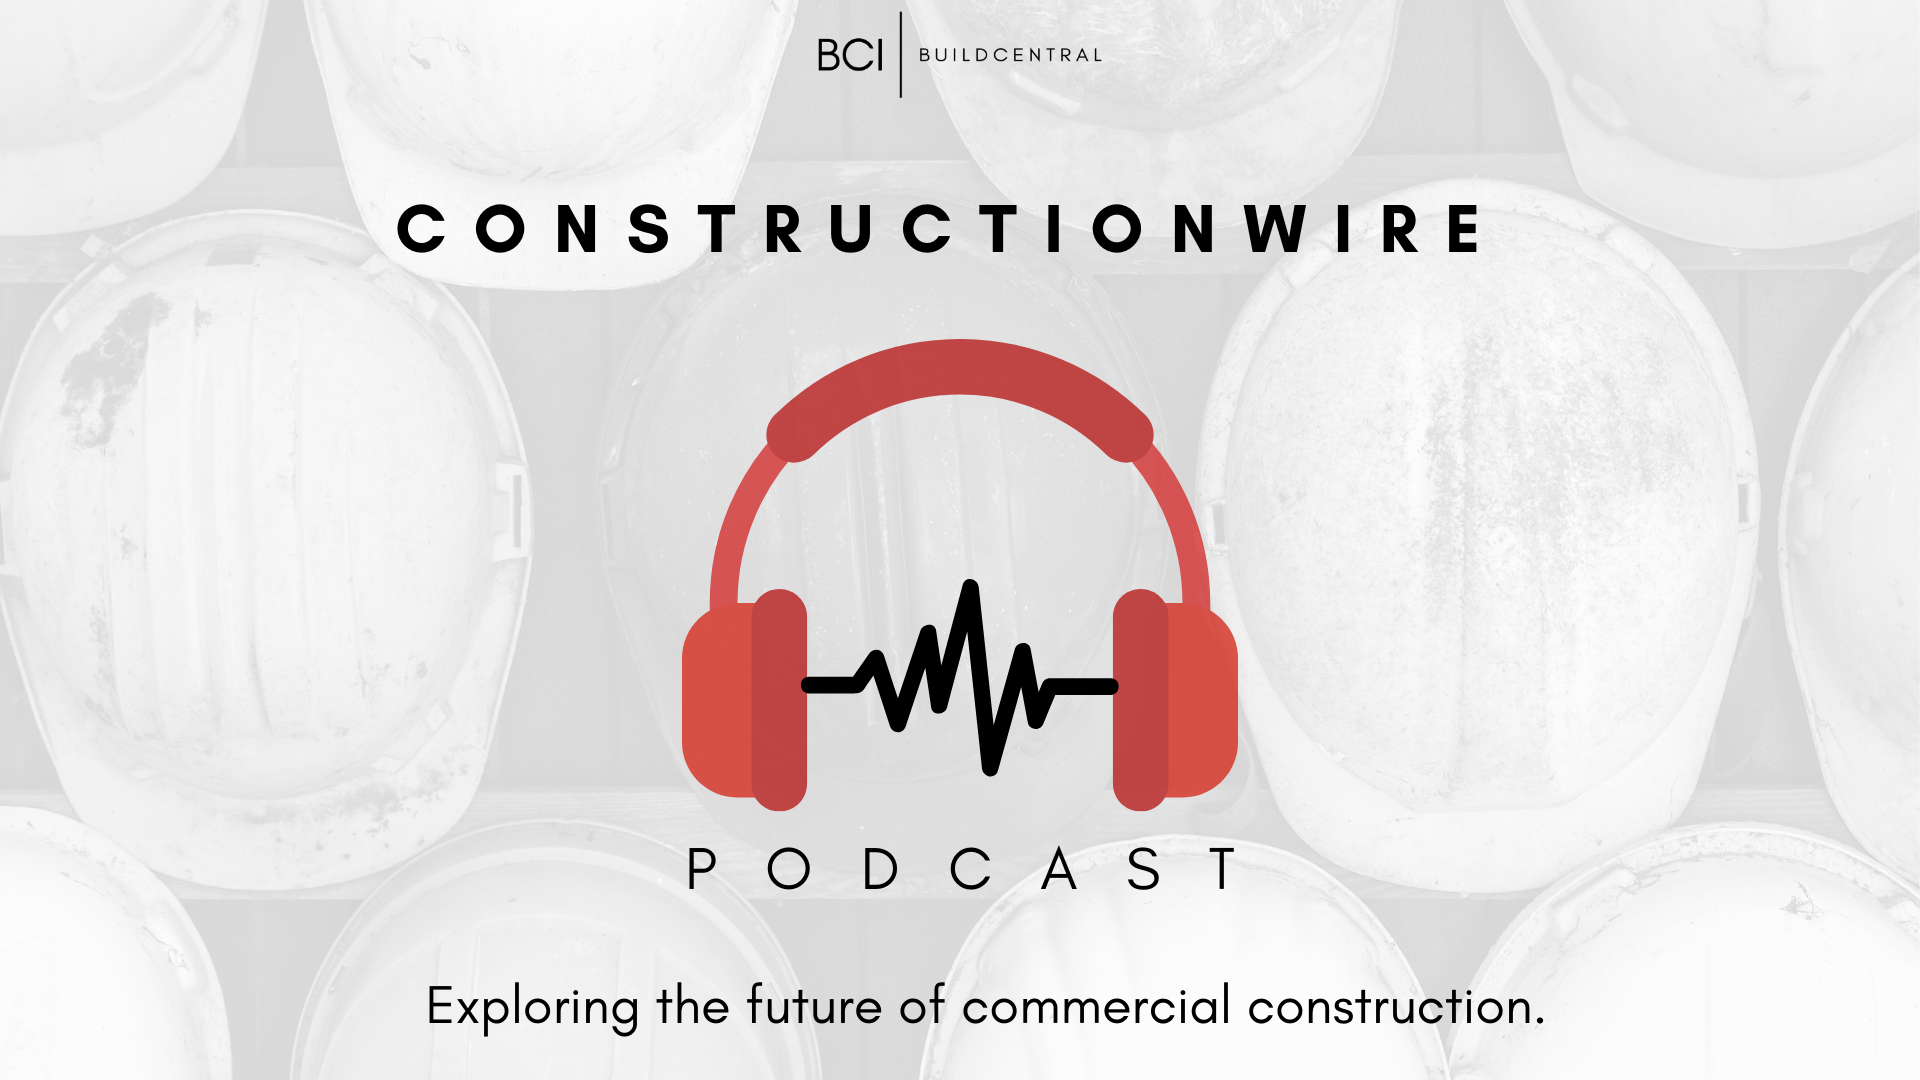 Copy of Constructionwire Podcast hero